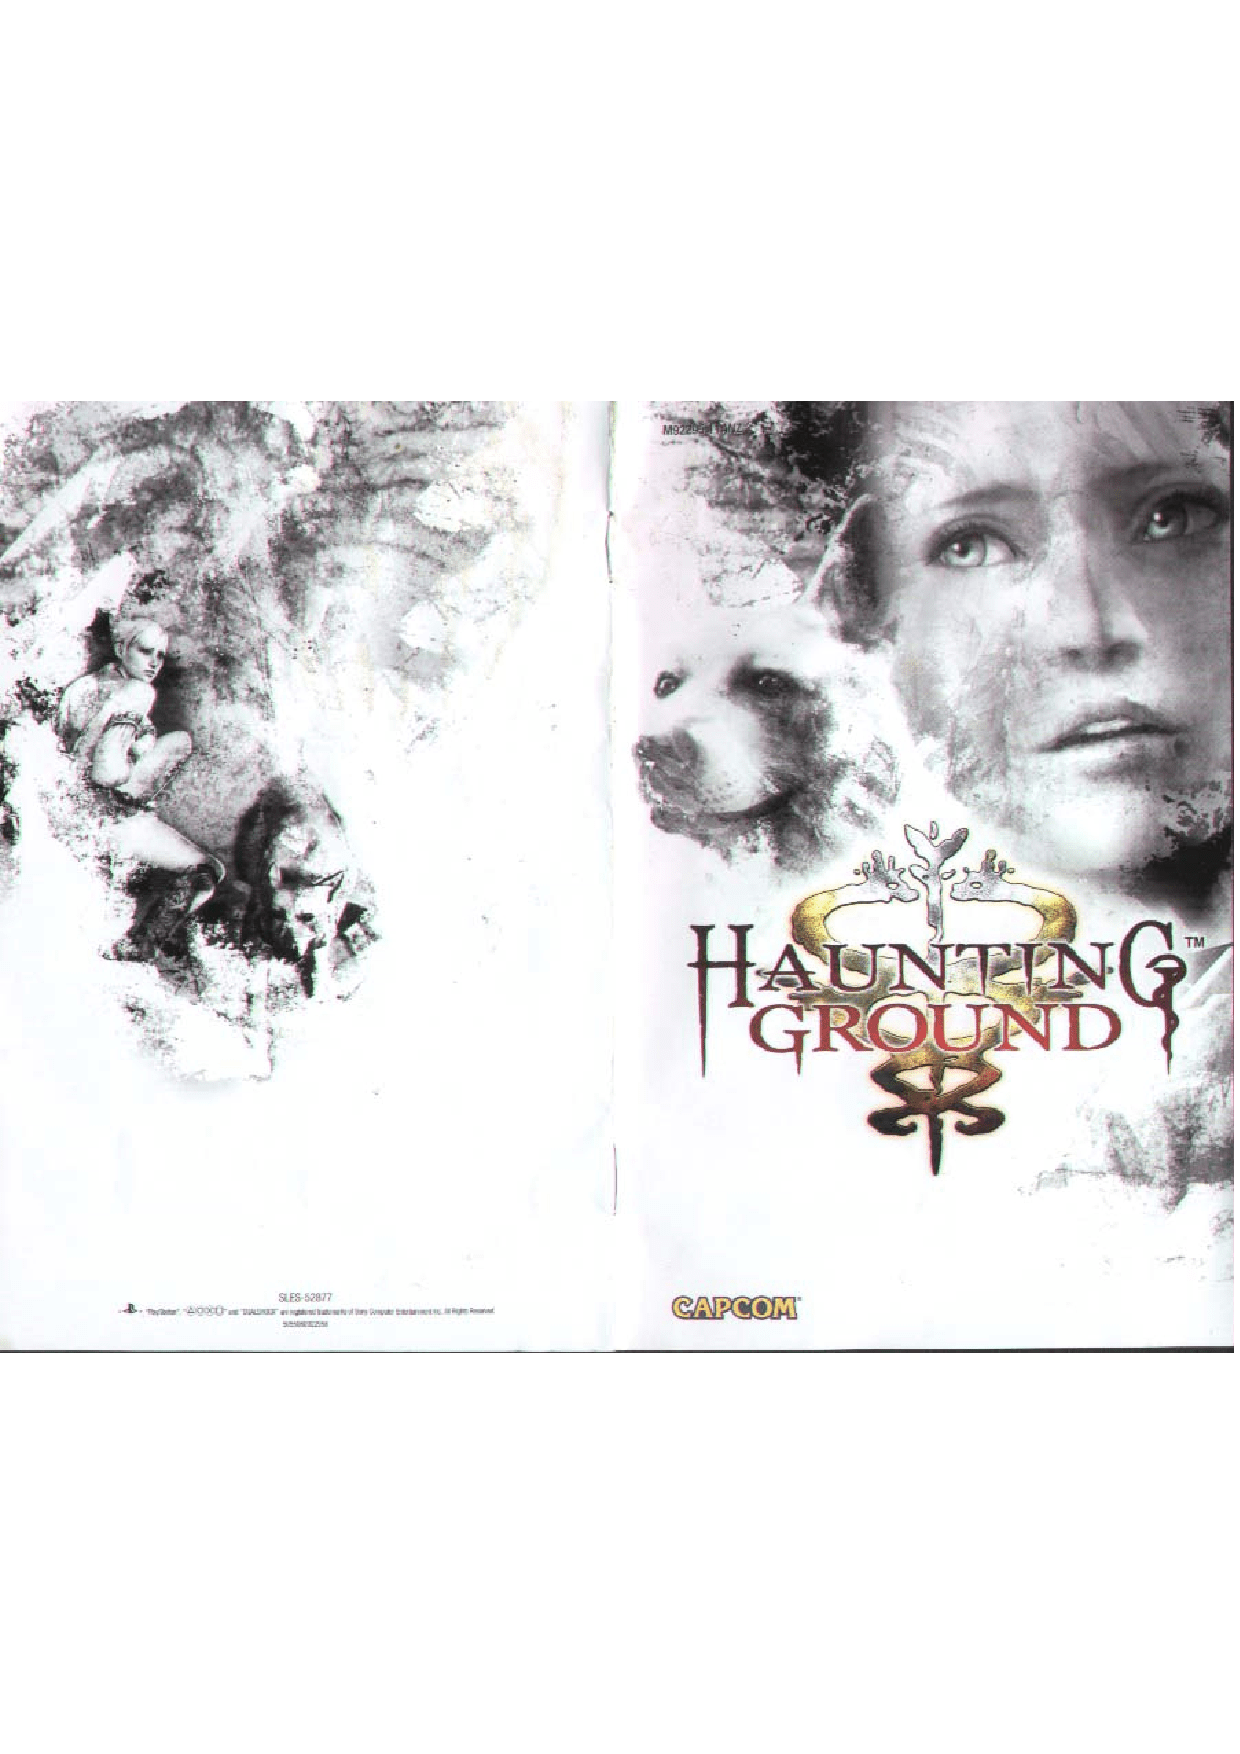 Games PS2 HAUNTING GROUND User Manual